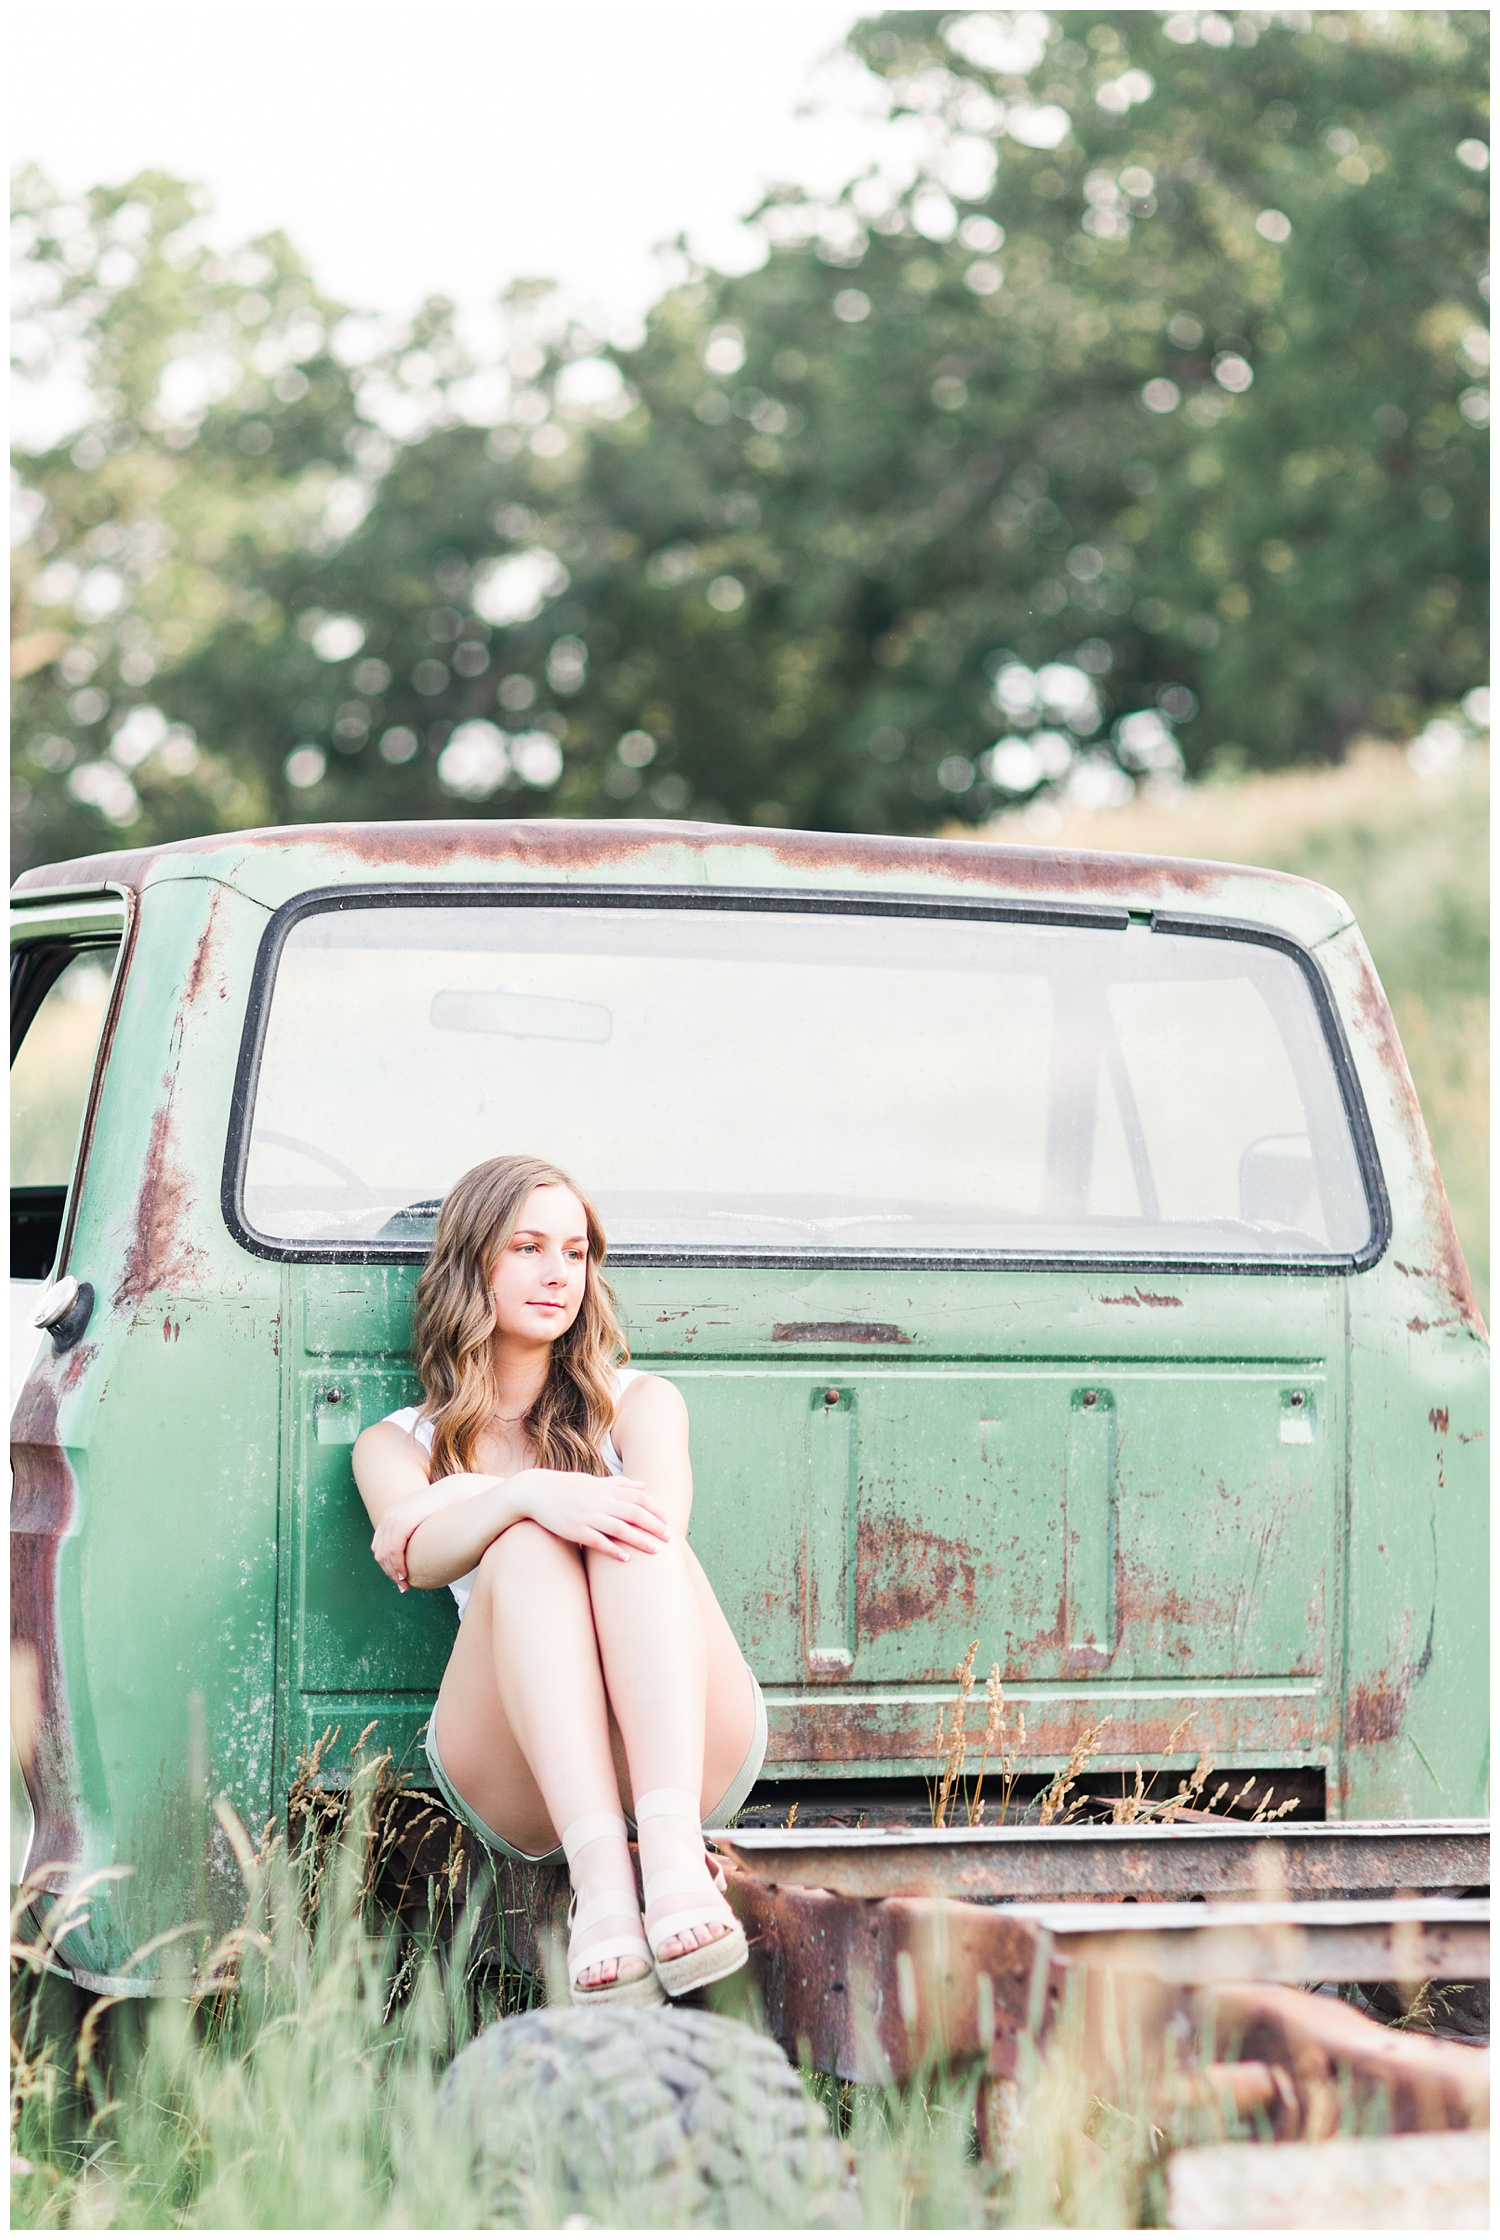 Senior Taylor sitting in the back of an old green Ford truck in a grassy field | CB Studio